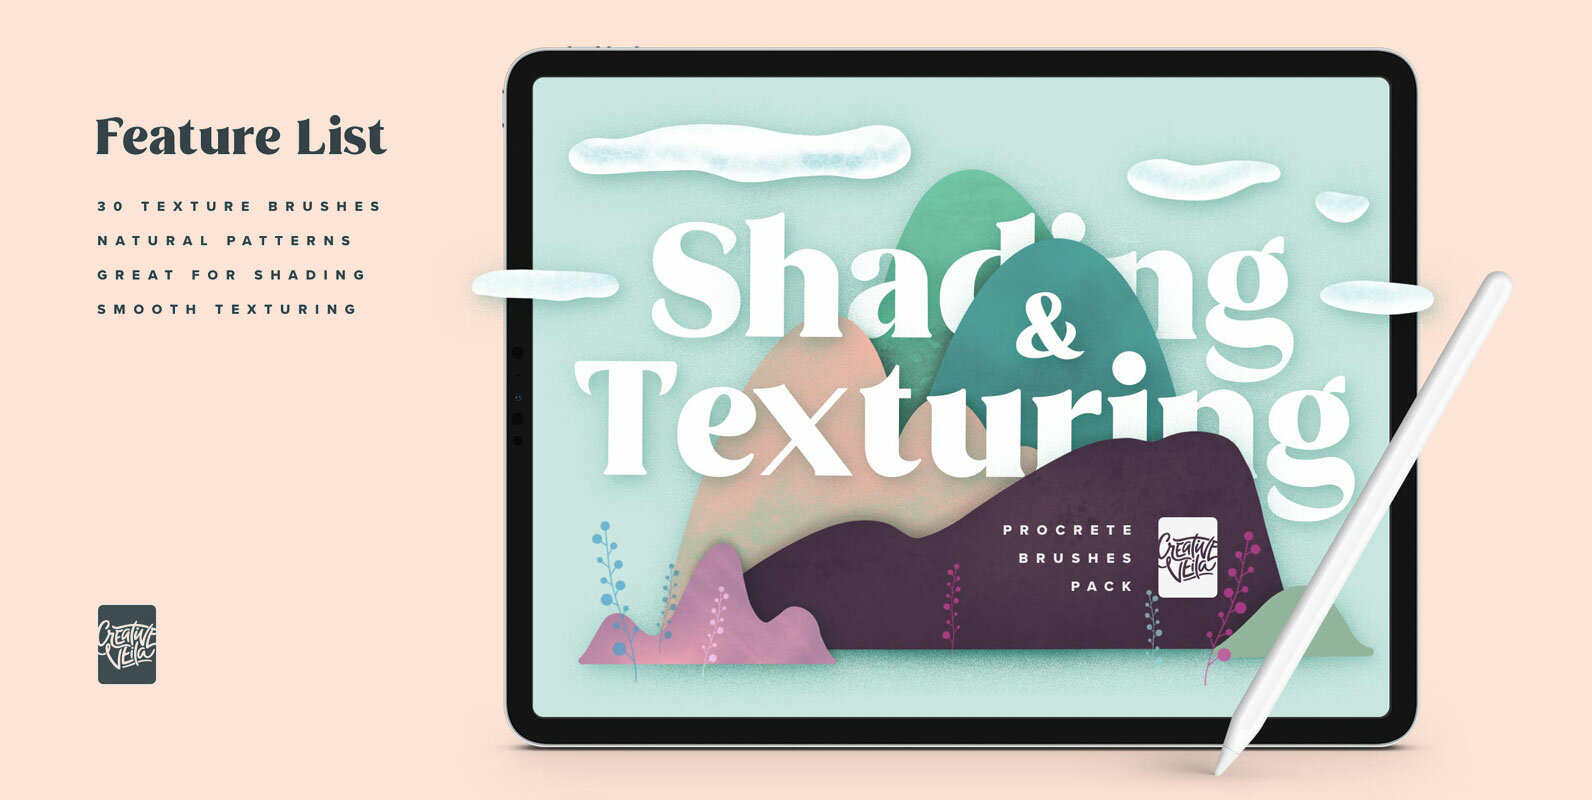 Natural Shading & Texture Procreate Brushes